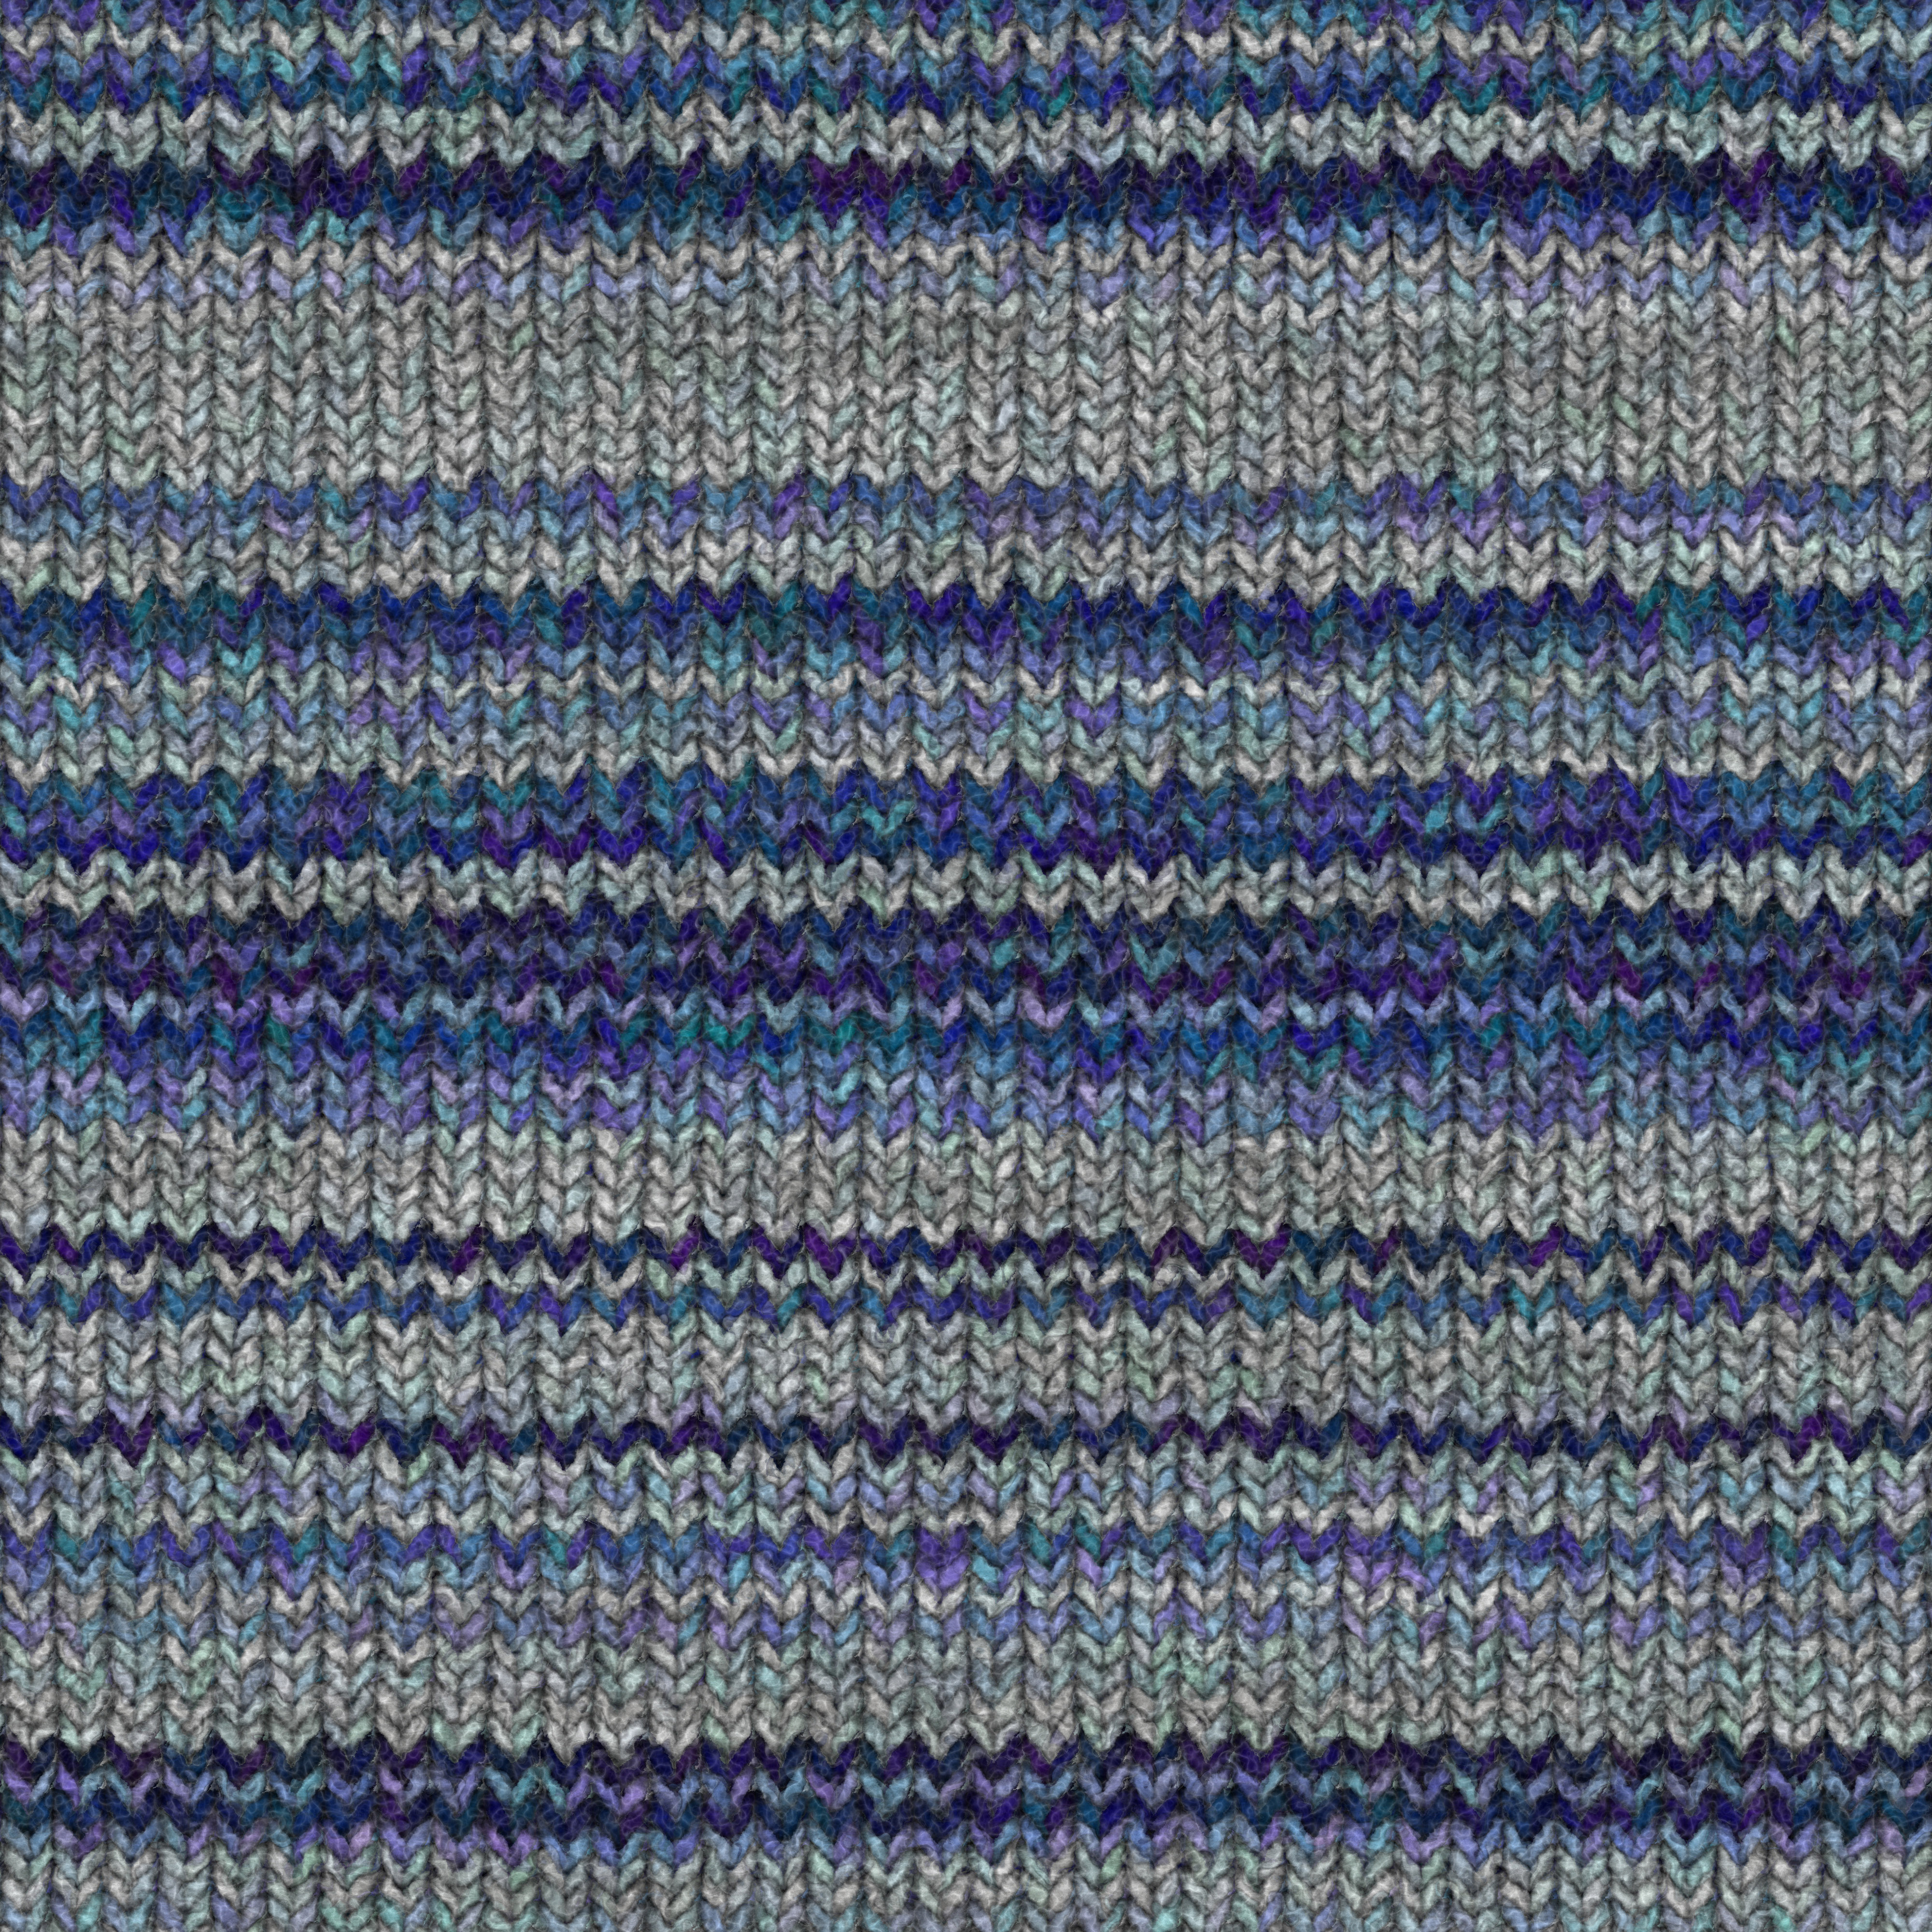 Knitted wool texture background image